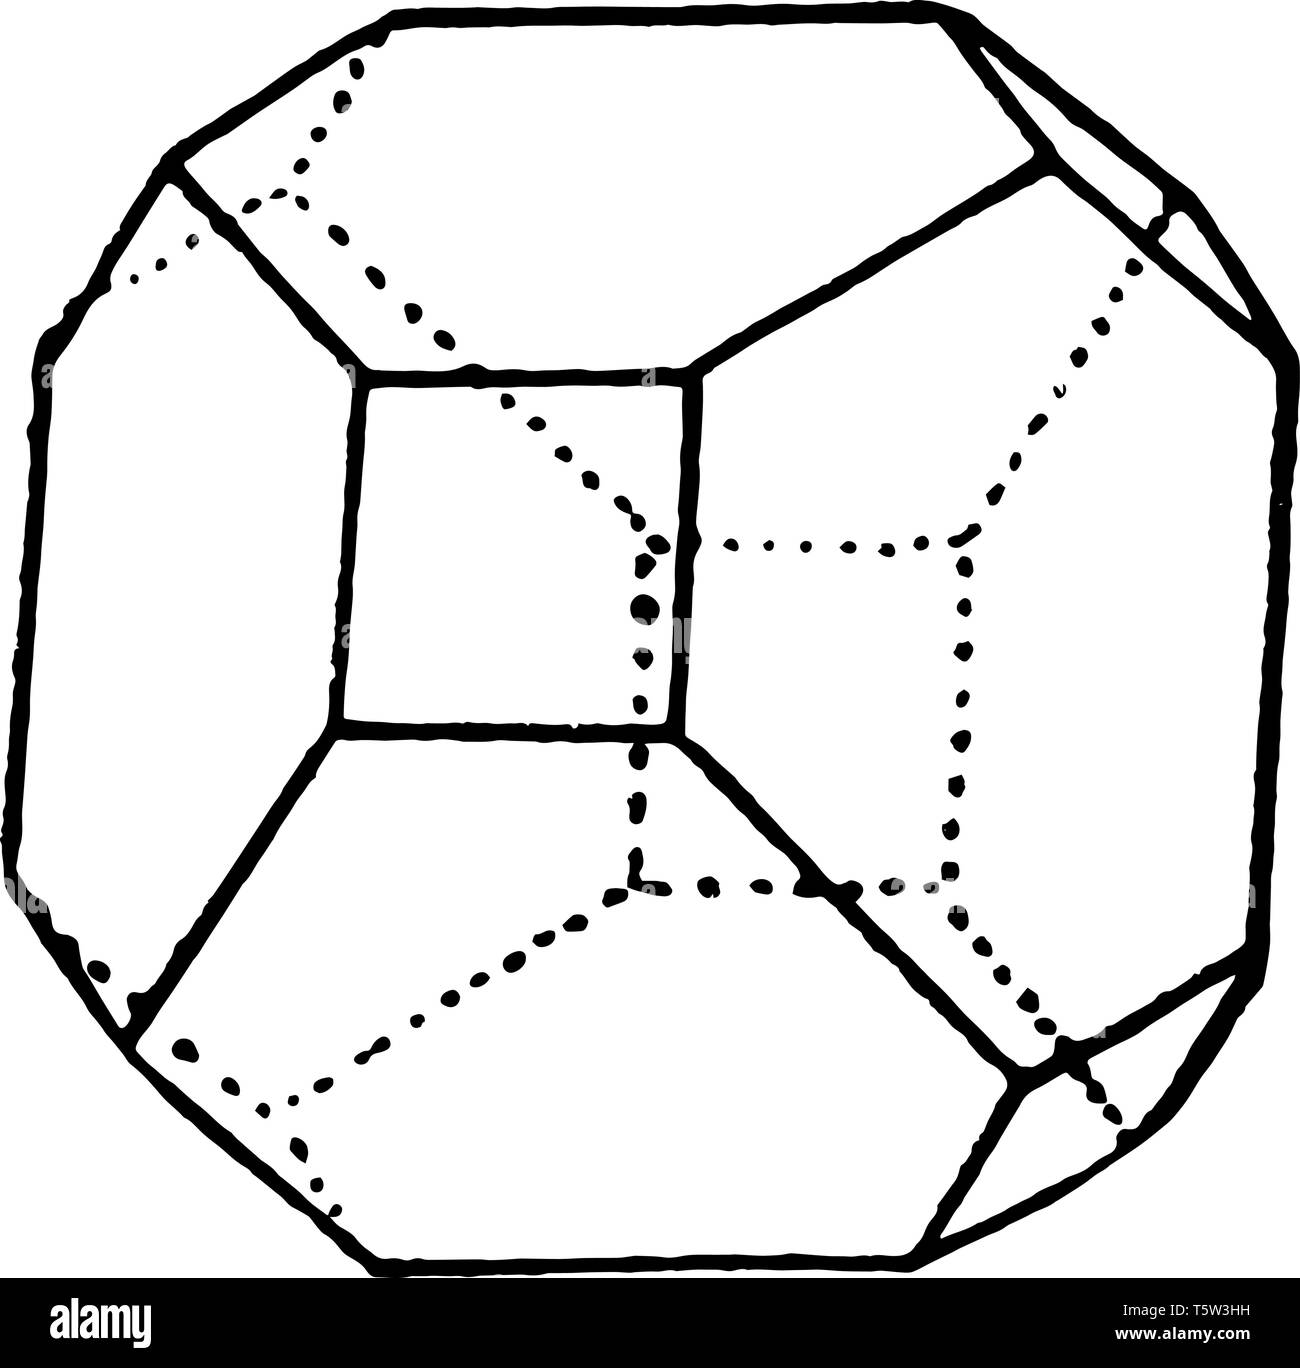 The combination of a hexahedron and shows an octahedron, vintage line drawing or engraving illustration. - Stock Image